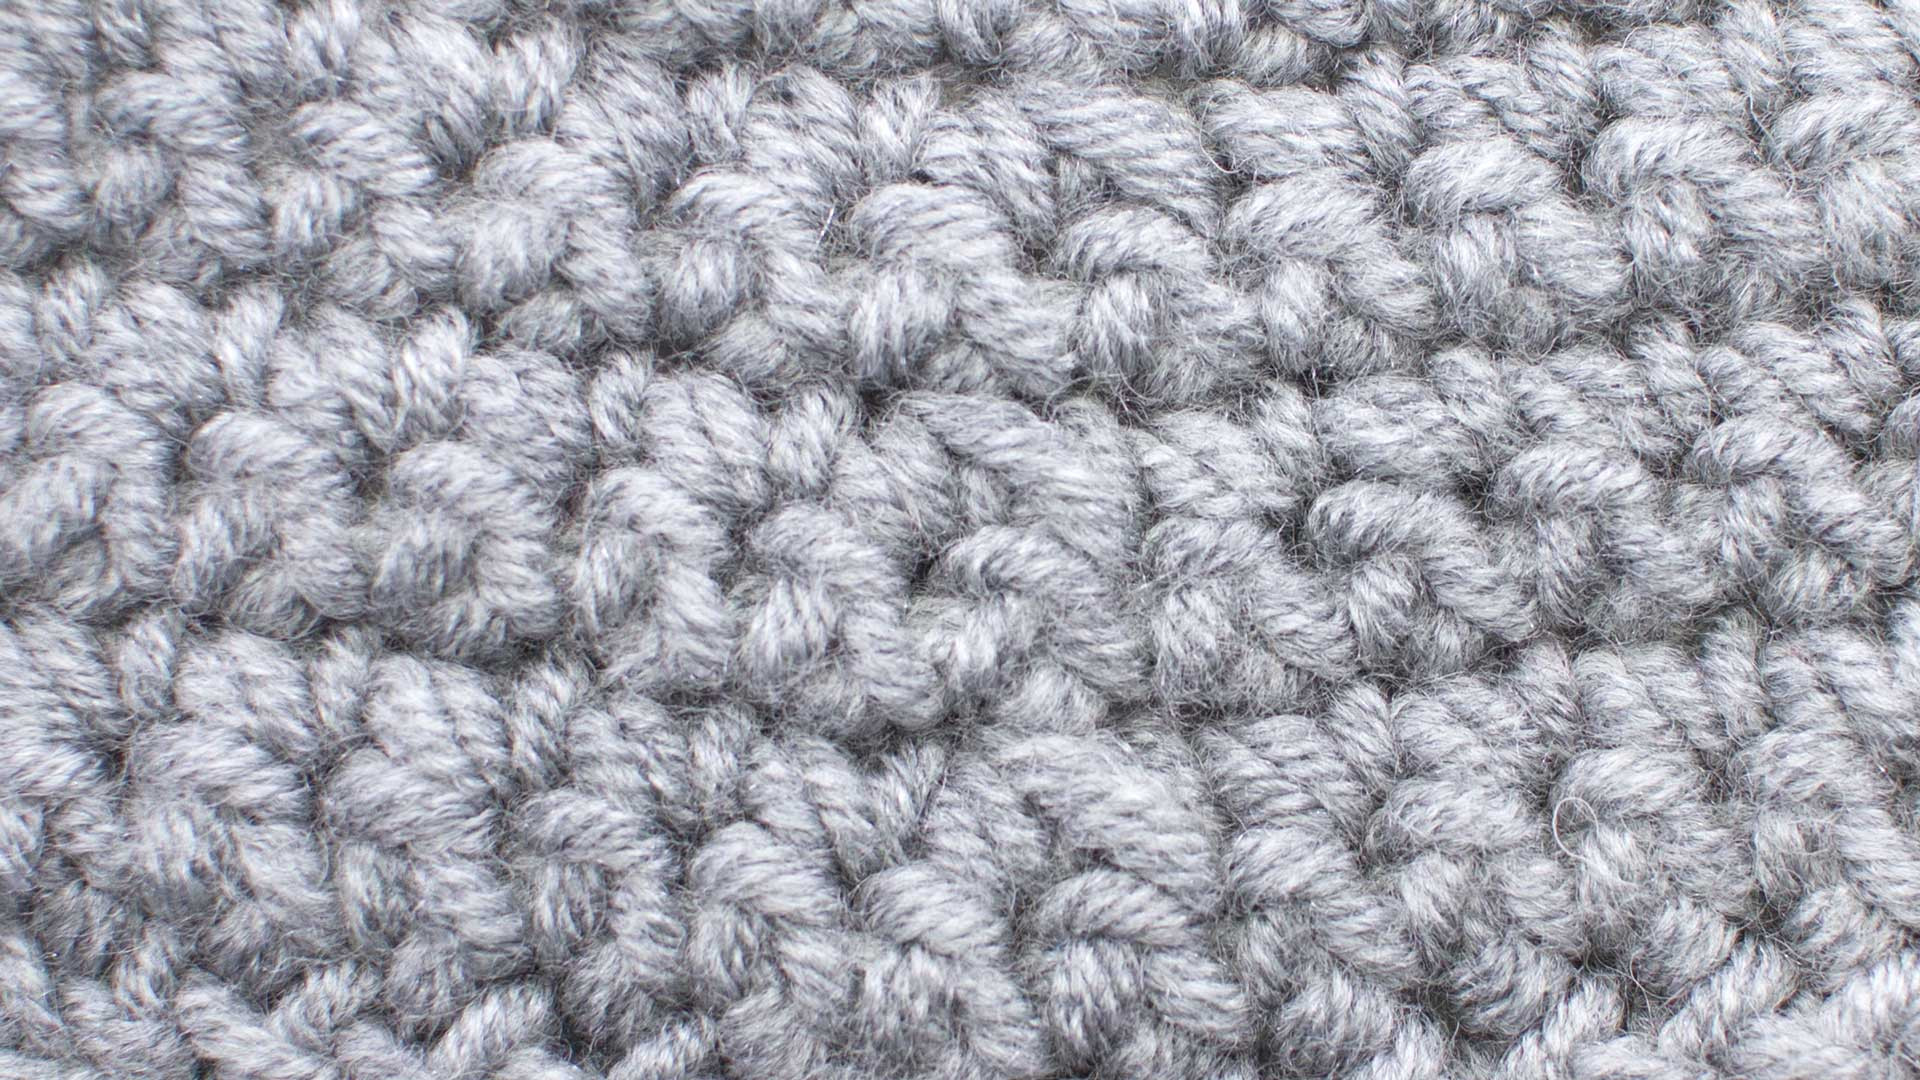 New the Sc2tog Decrease Crochet New Stitch A Day New Crochet Stitches Of Adorable 47 Photos New Crochet Stitches